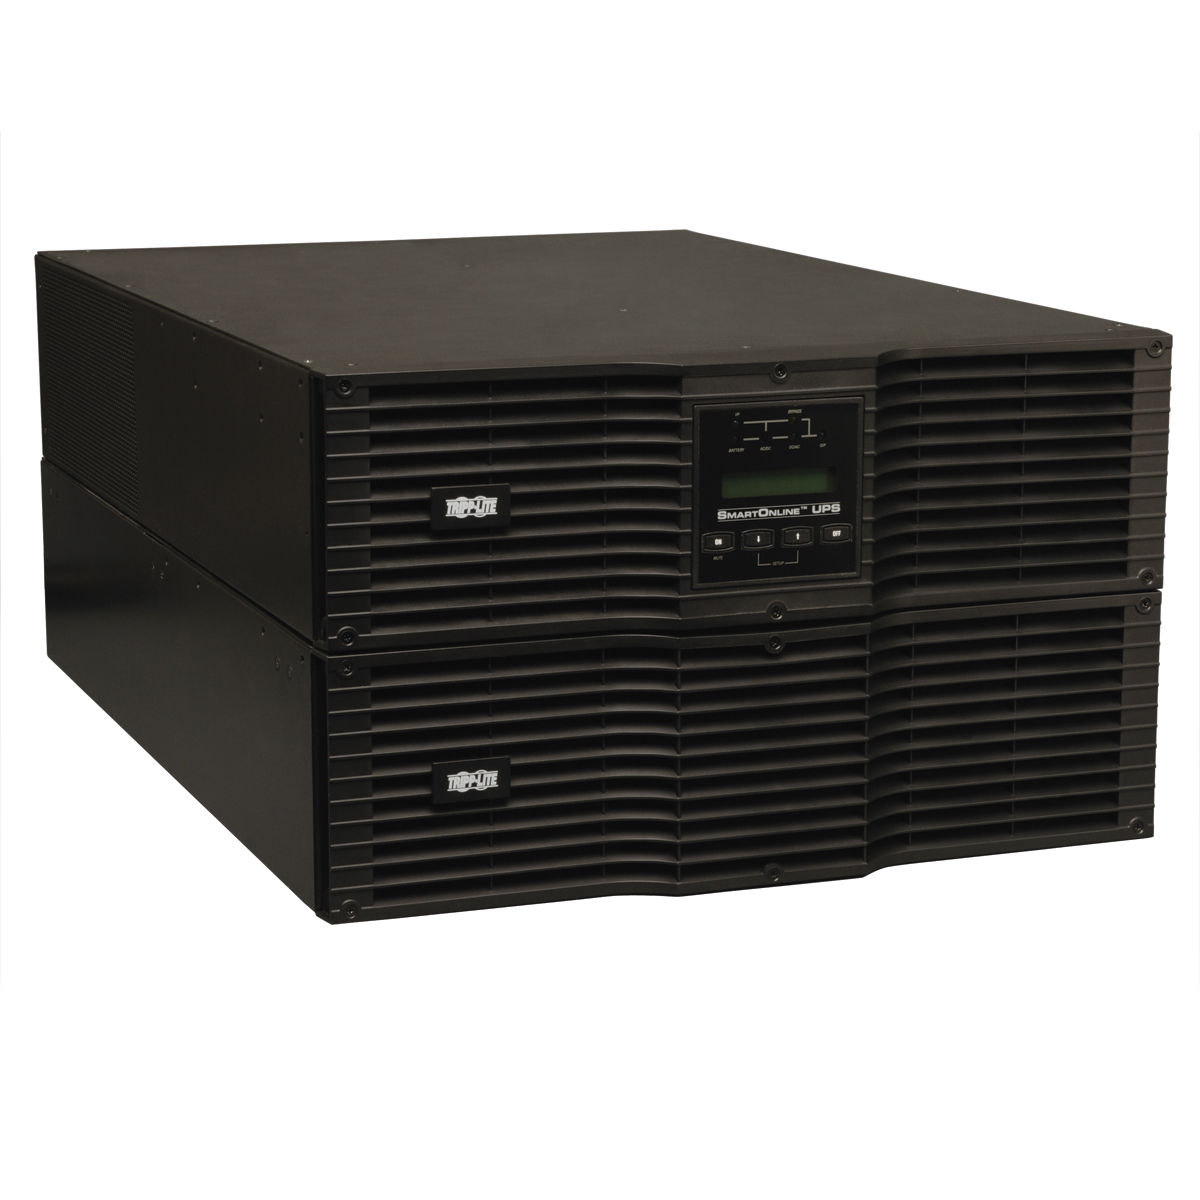 Tripp Lite SmartOnline 200-240V 10kVA 9kW Double-Conversion UPS, 6U, Extended Run, Network Card Slot, USB, DB9, Bypass Switch,C19